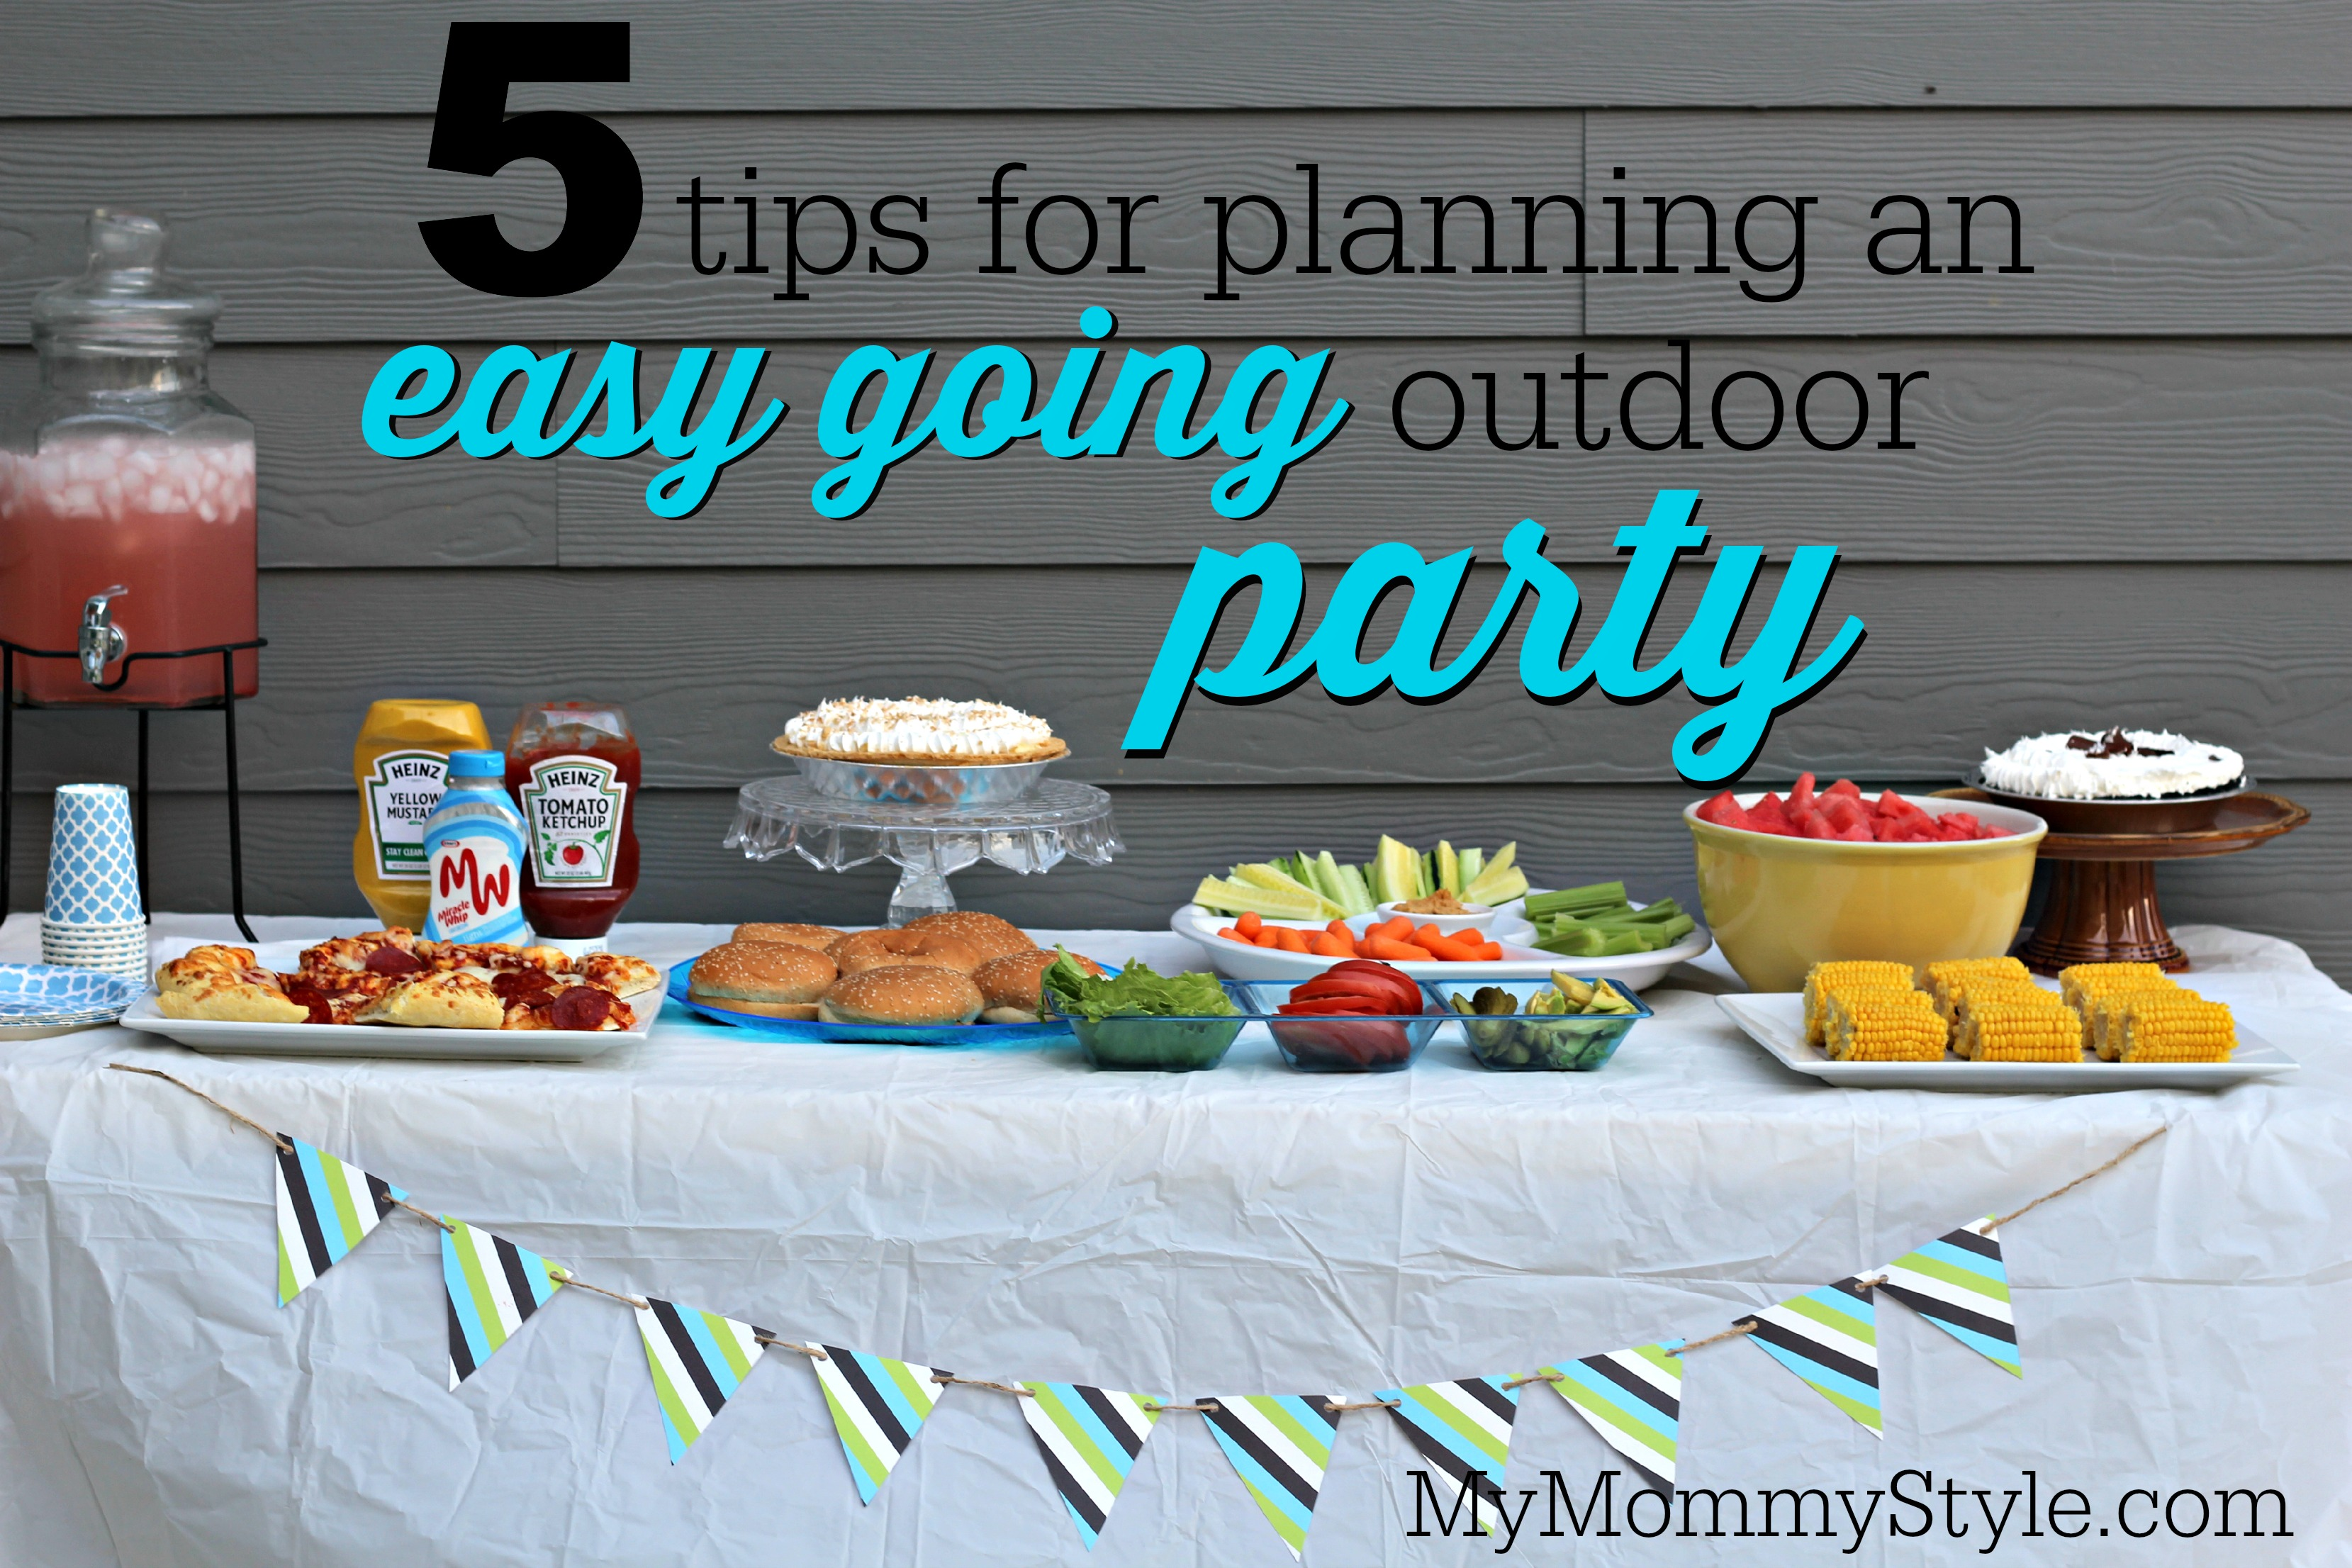 5 tips for planning an easy going outdoor party - My Mommy ...